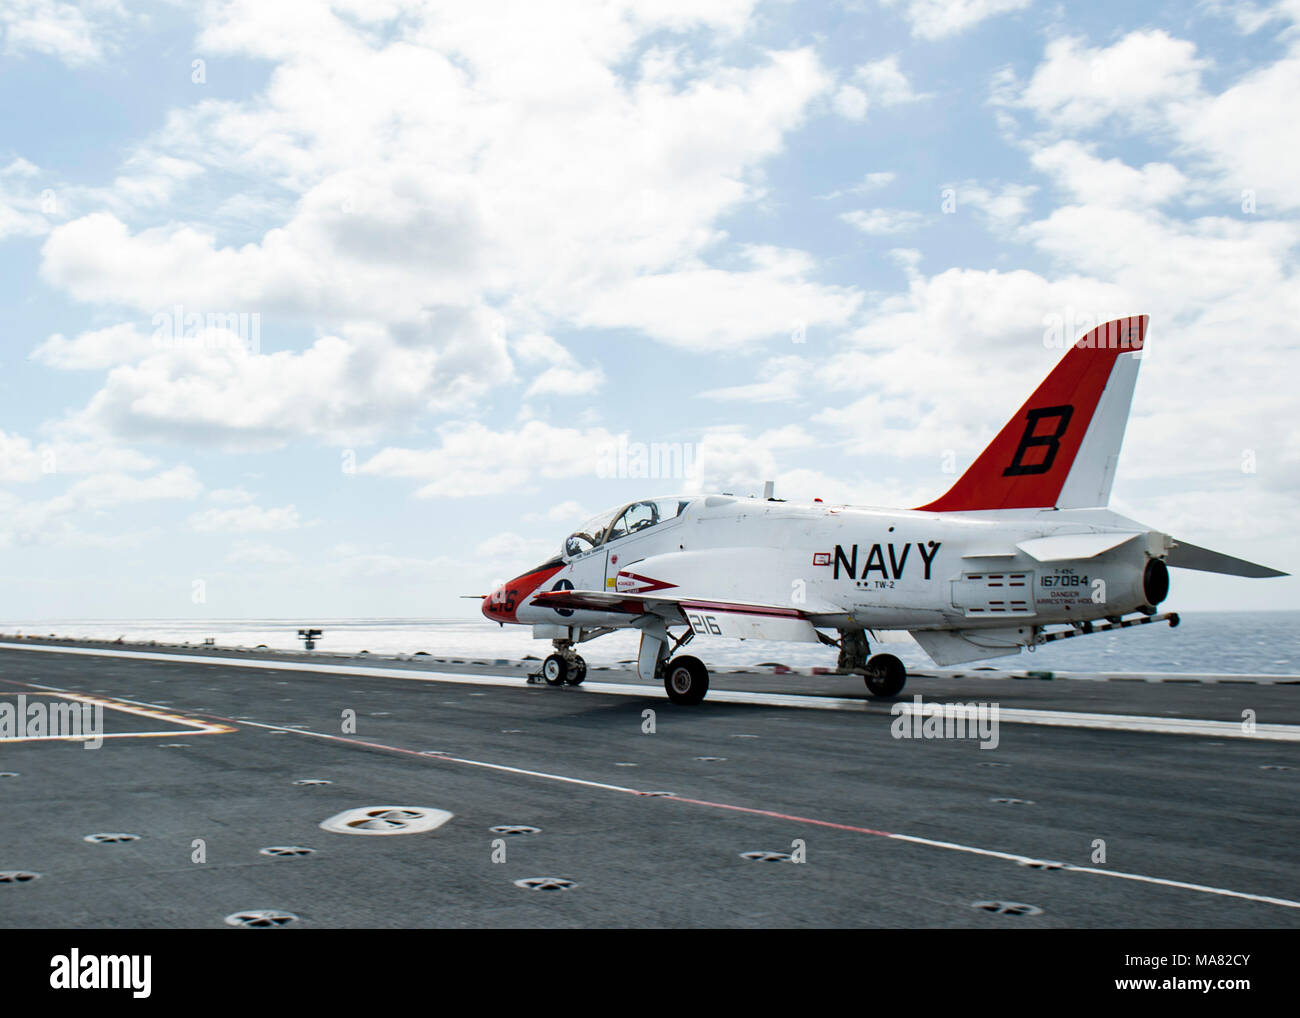 180328-N-WX604-0367 ATLANTIC OCEAN (March 29, 2018) Lt. j.g. Tyler Ballard, assigned to Training Air Wing (TW) 2, takes off in a T-45C Goshawk aboard the aircraft carrier USS George H.W. Bush (CVN 77). The ship is underway conducting sustainment exercises to maintain carrier readiness. (U.S. Navy photo by Mass Communication Specialist 2nd Class Joseph E. Montemarano) - Stock Image